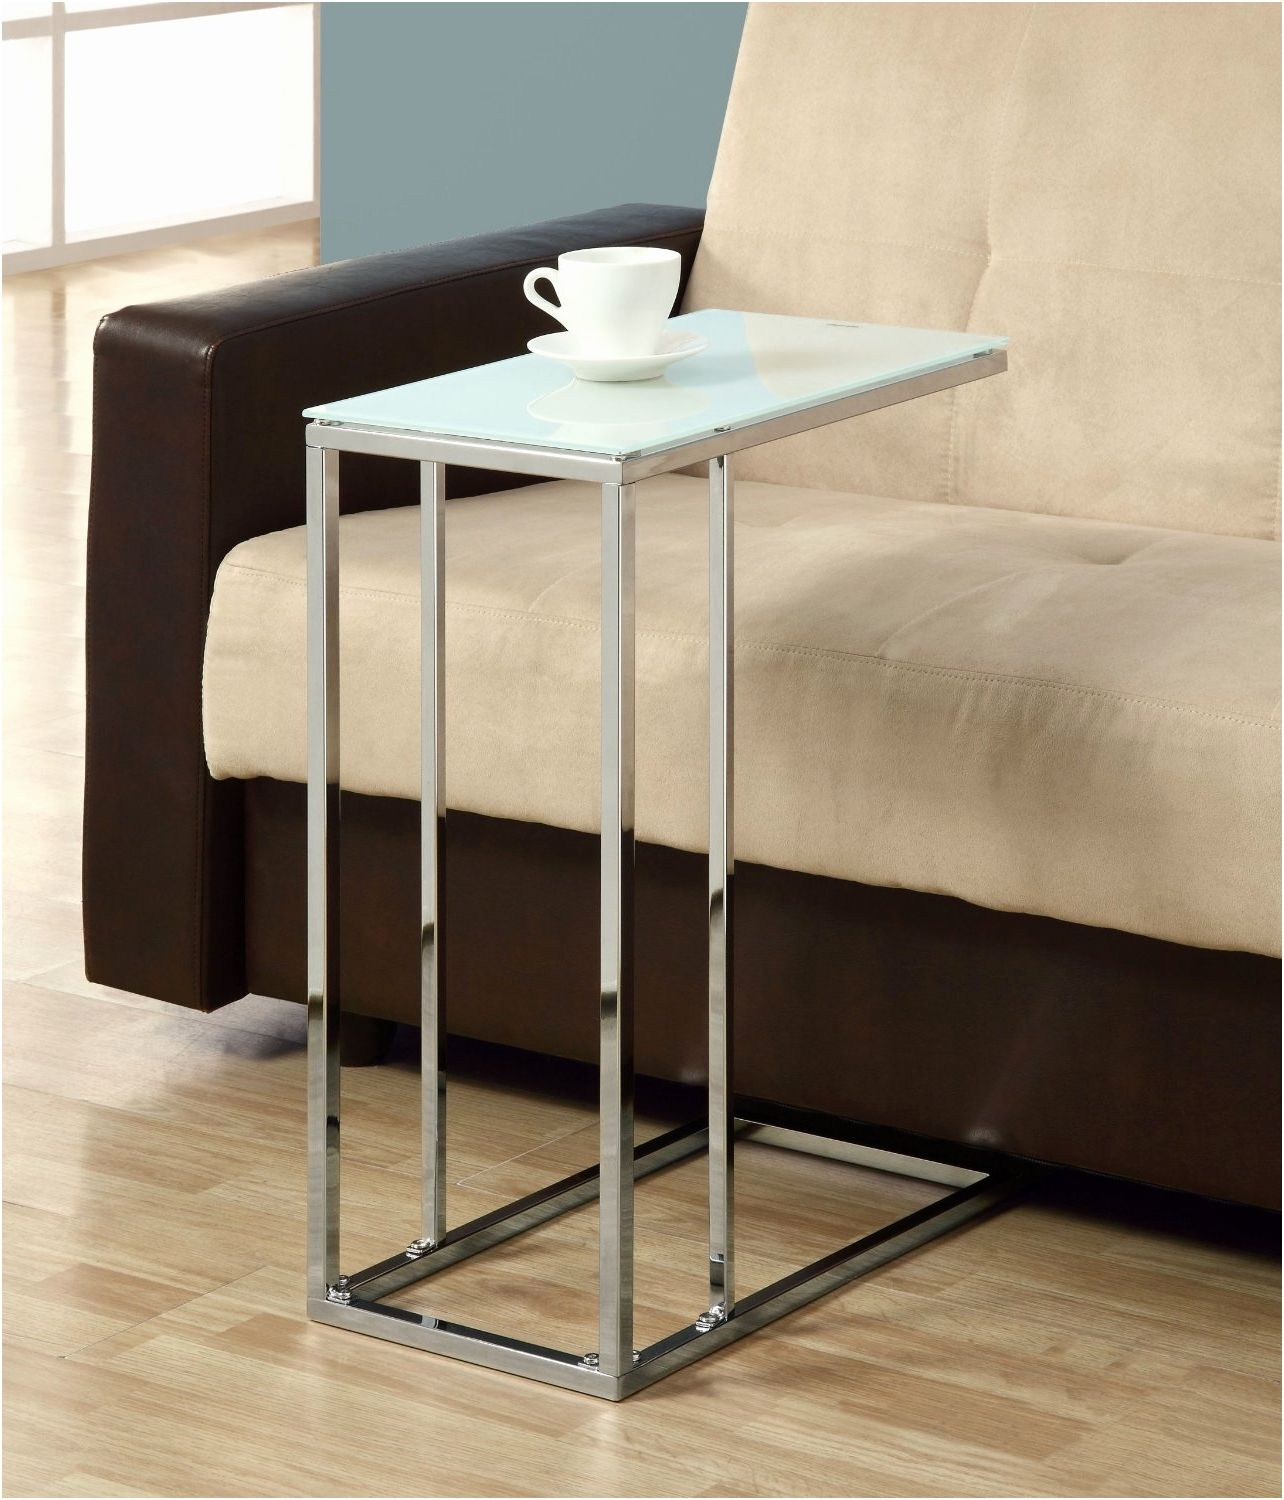 lovely walmart sofa table ideas-Latest Walmart sofa Table Online